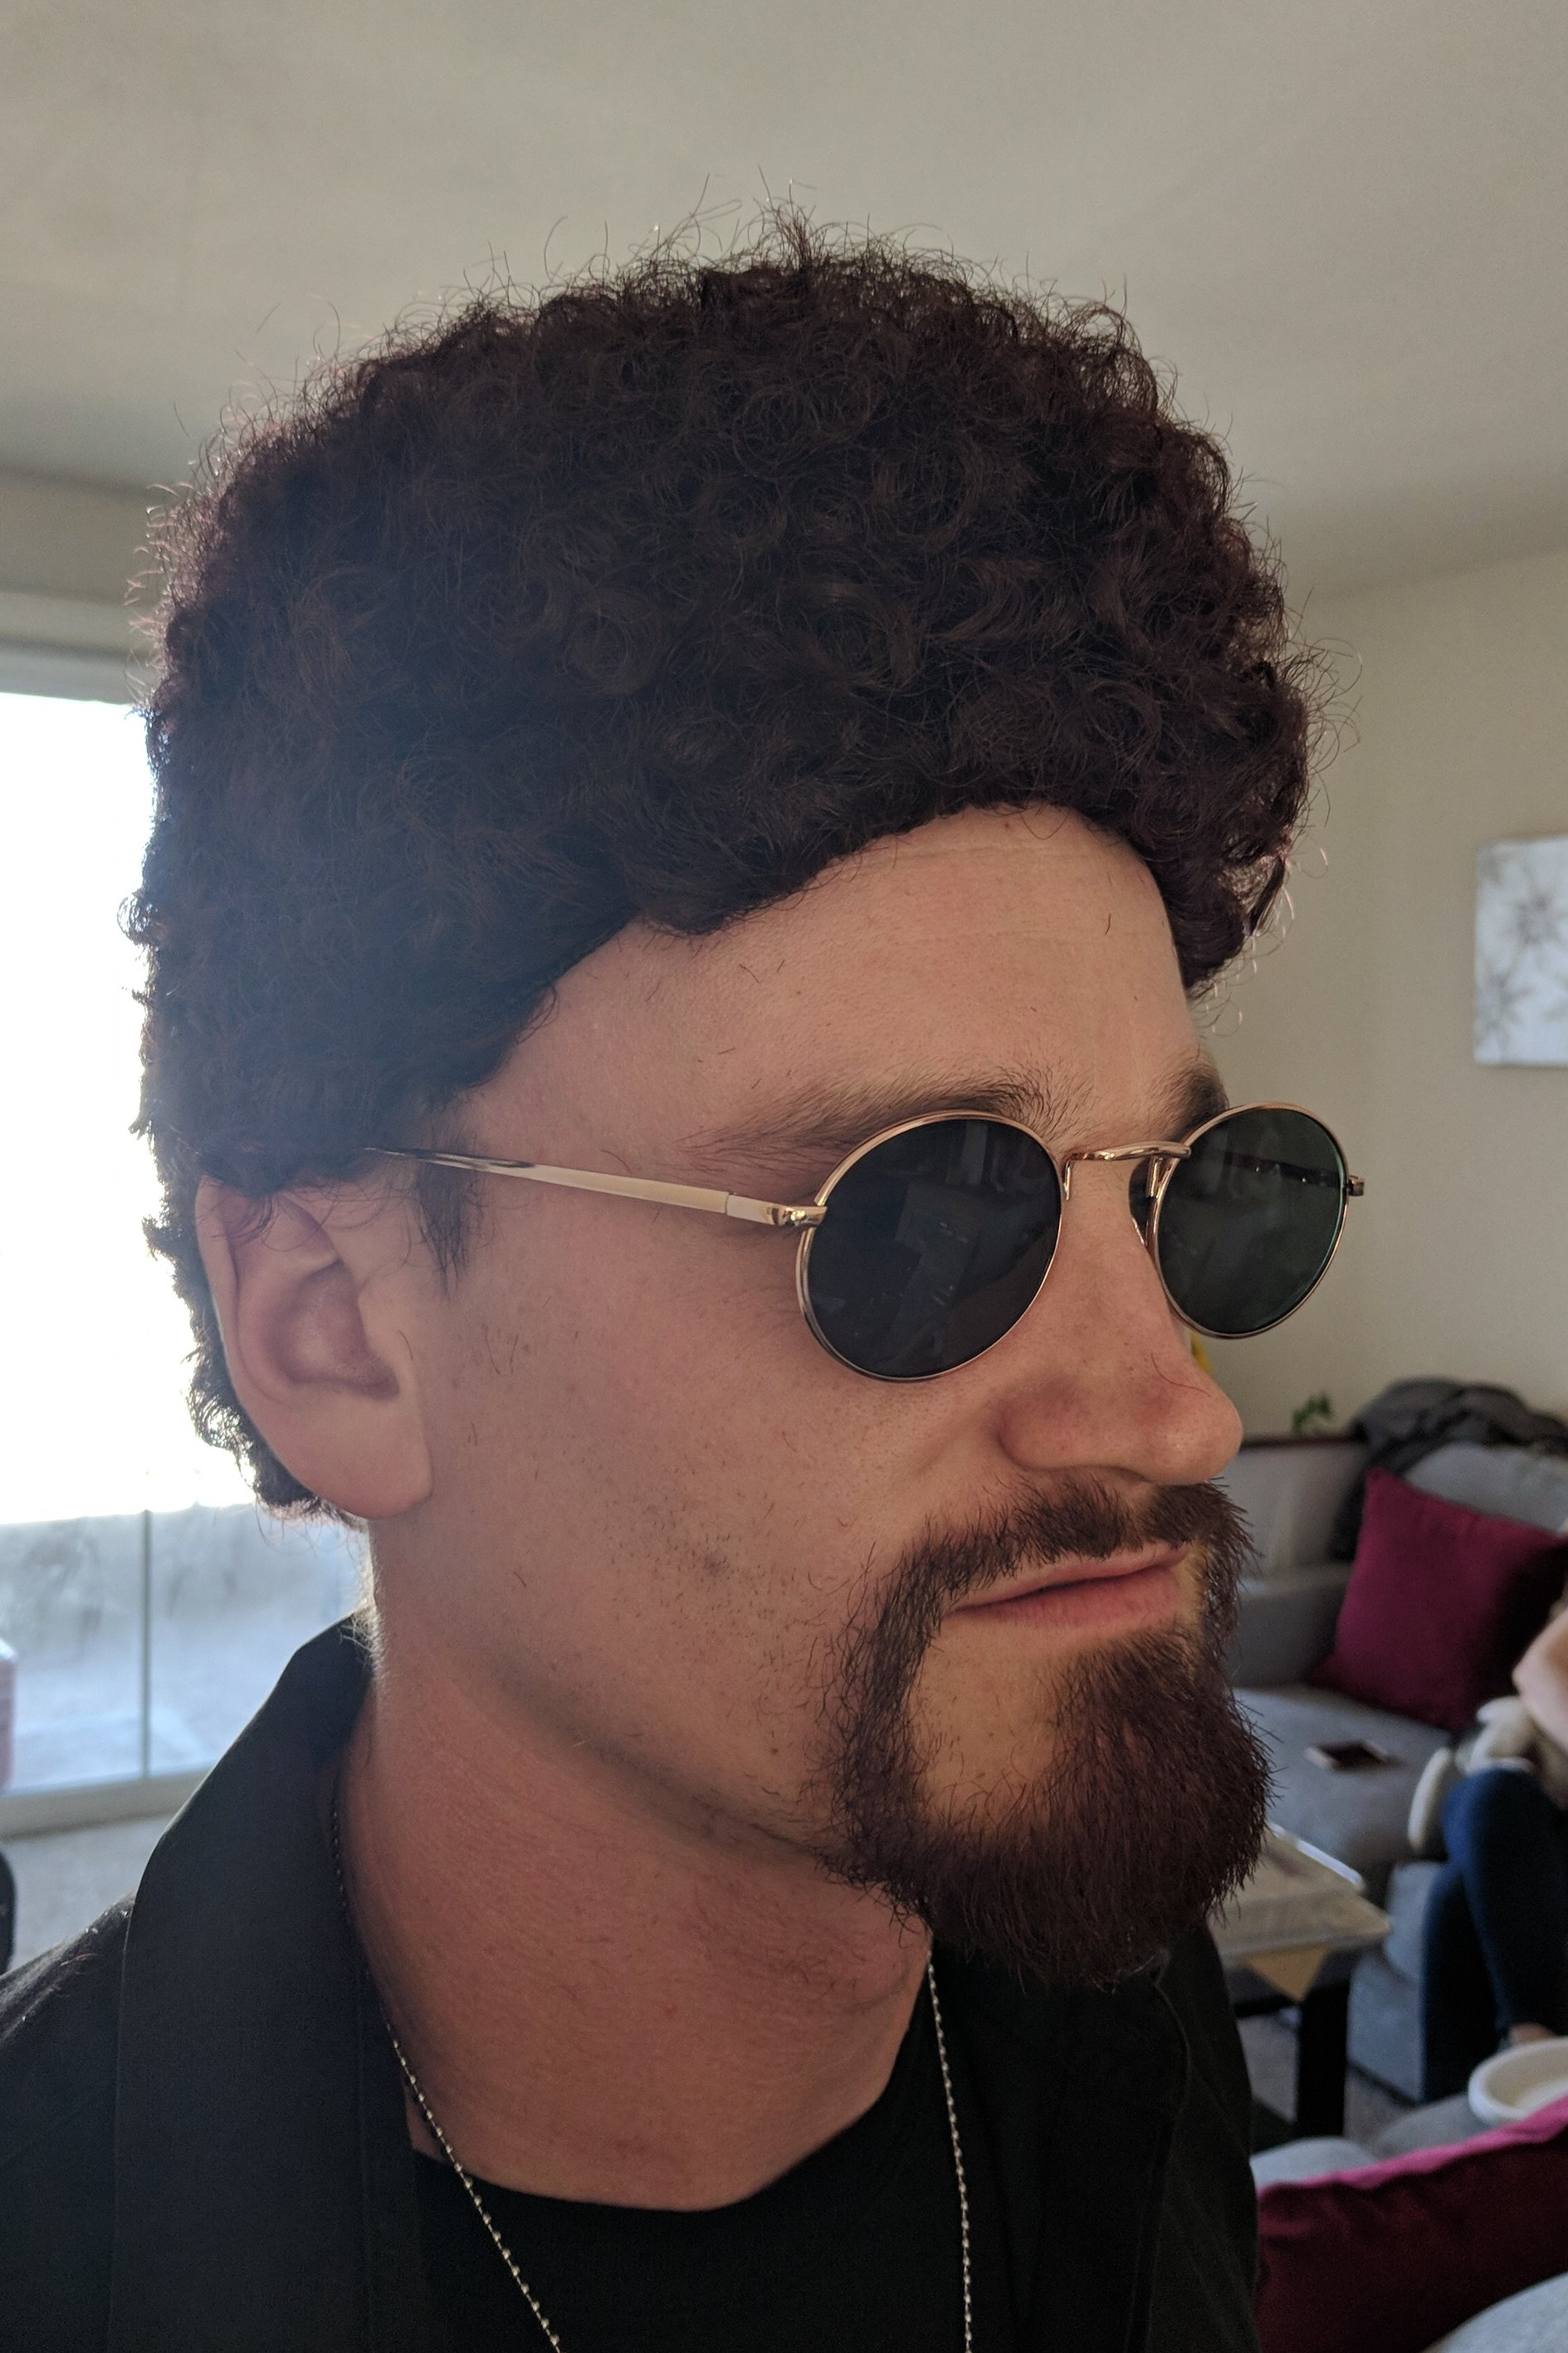 Tik Tok, 2018 Director: R. J. Blake Actor: J Norman Riley   Synthetic afro wig cut into a semi flat top